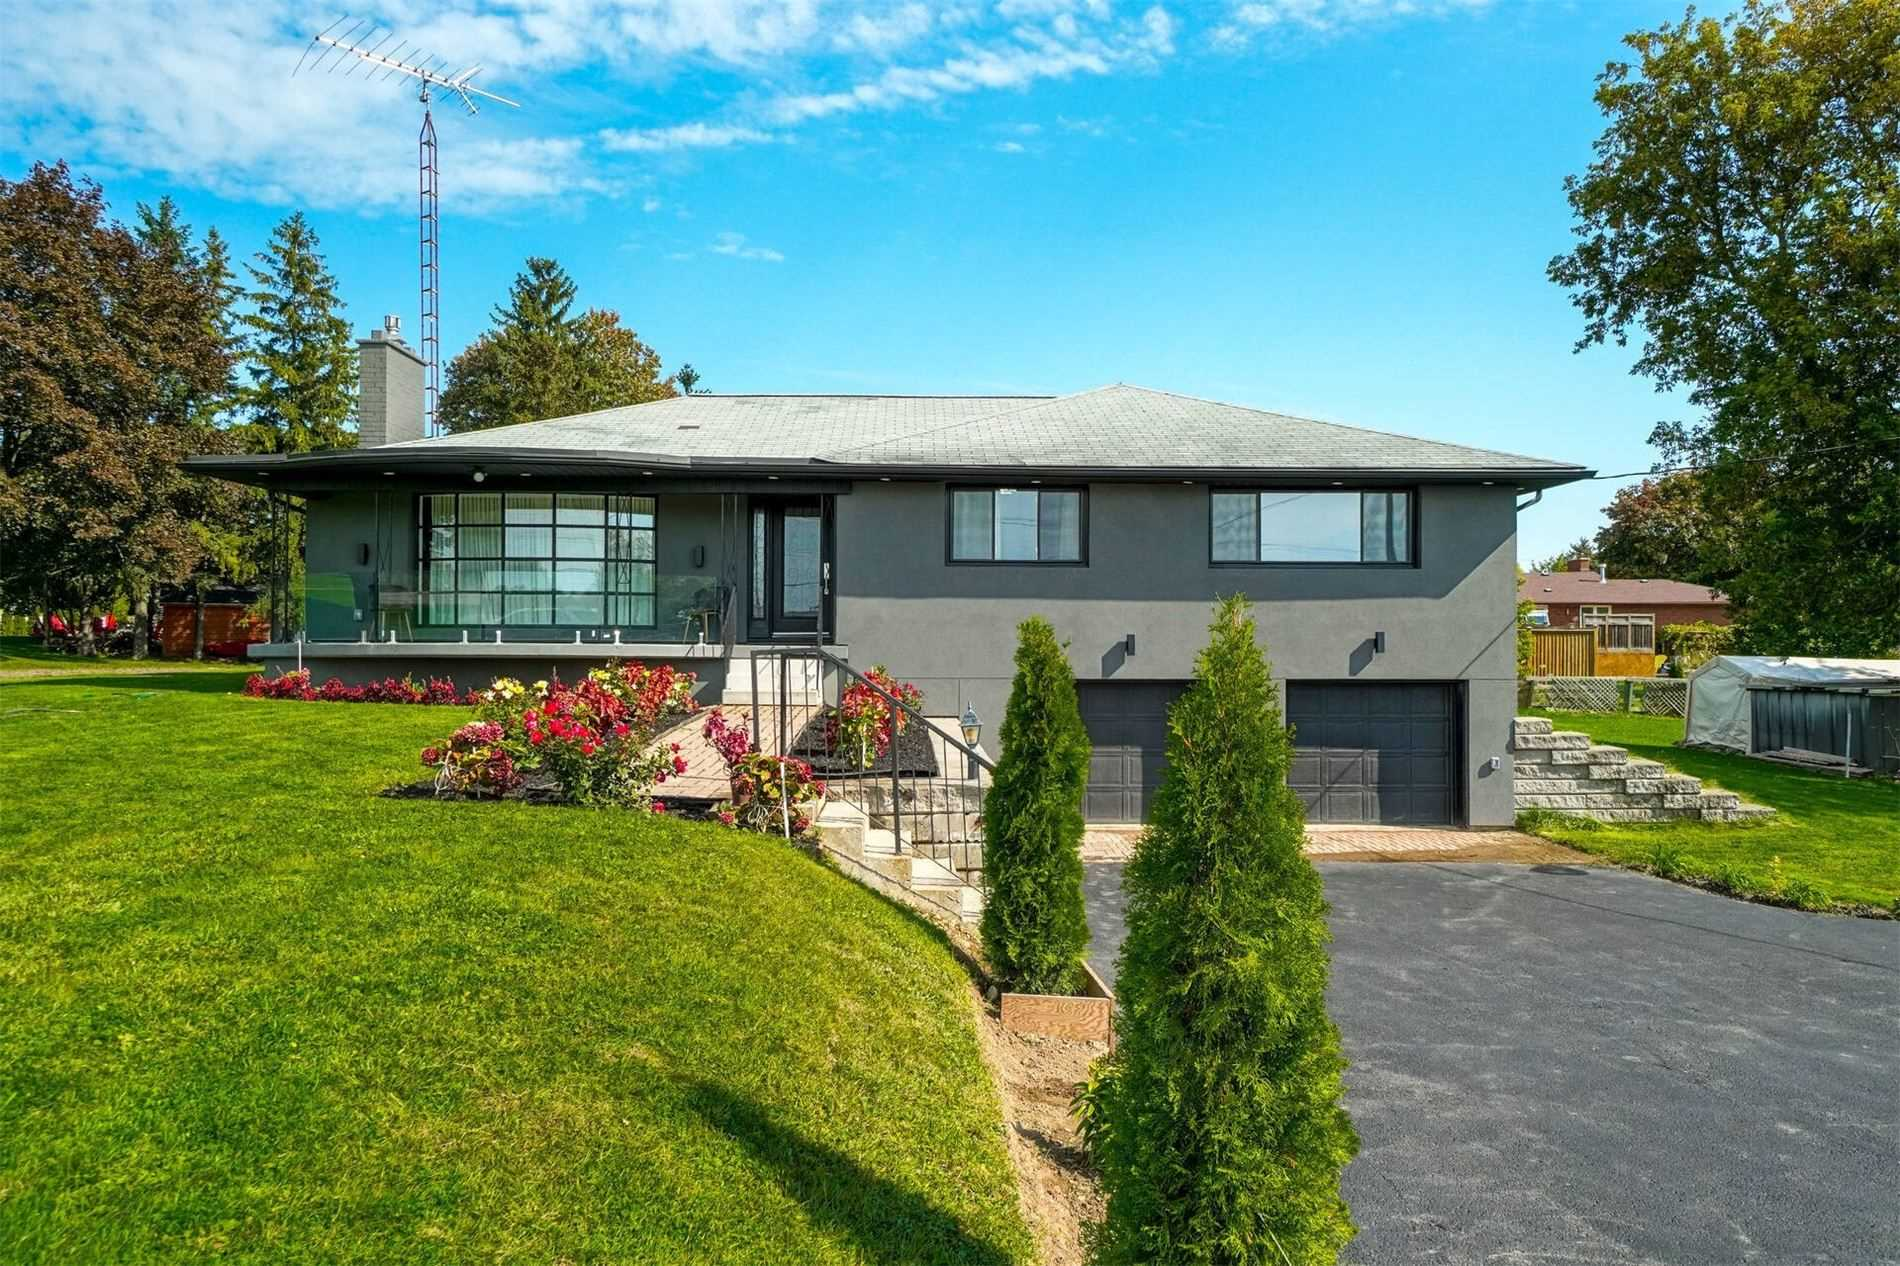 Detached house For Sale In Guelph/Eramosa - 5487 Highway 6, Guelph/Eramosa, Ontario, Canada N1H 6J2 , 3 Bedrooms Bedrooms, ,3 BathroomsBathrooms,Detached,For Sale,Highway 6